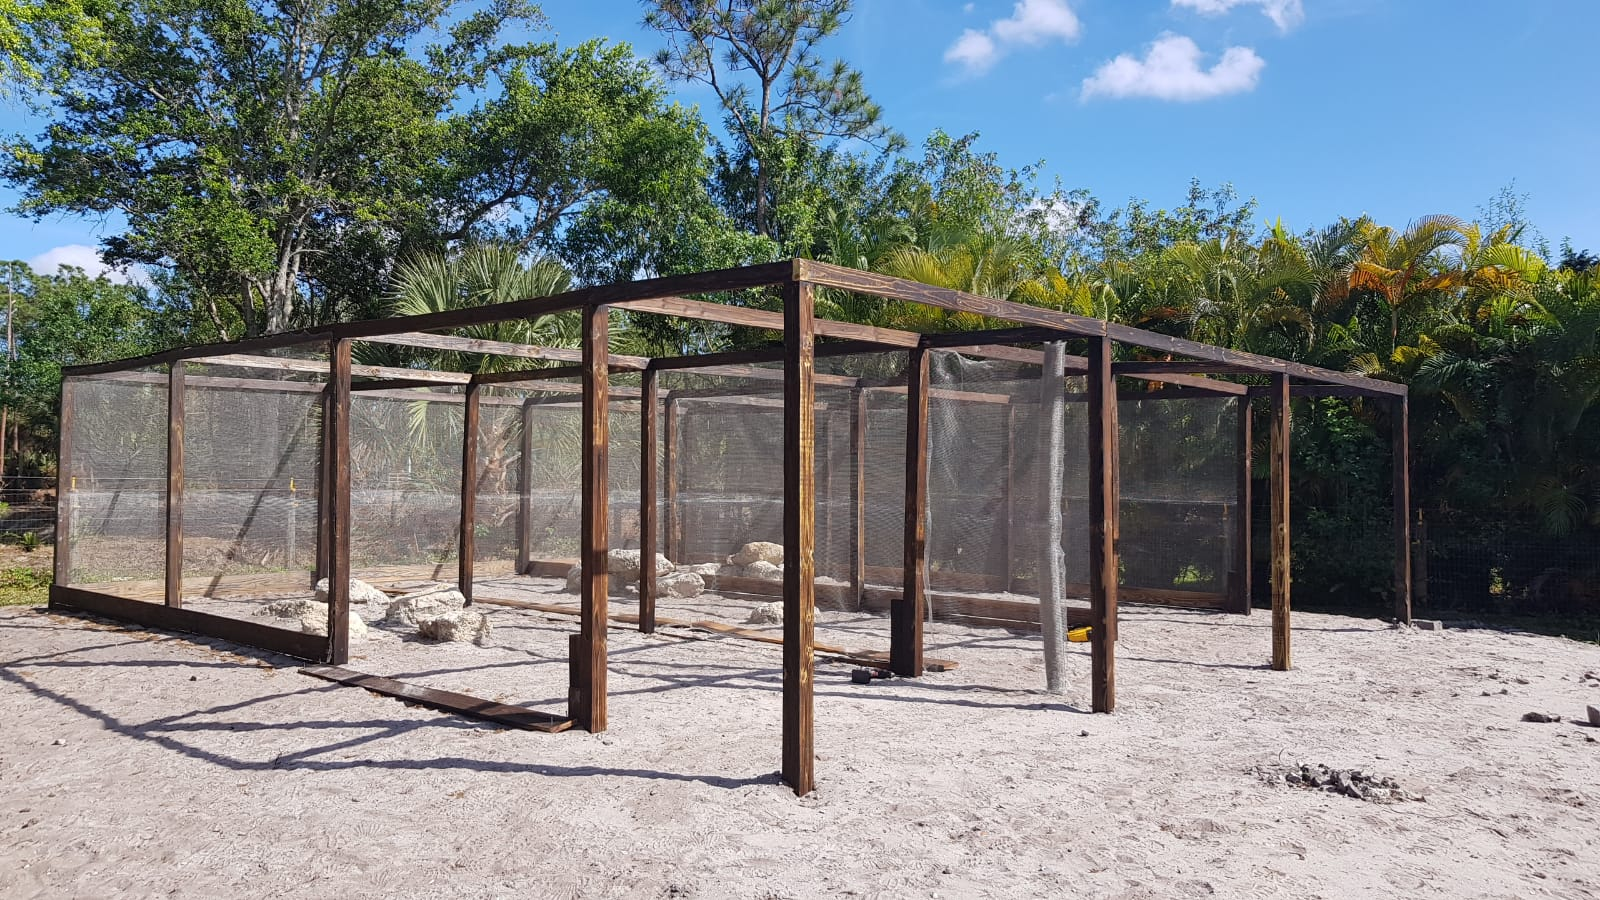 Wooden structure for animal enclosure using ClearMesh